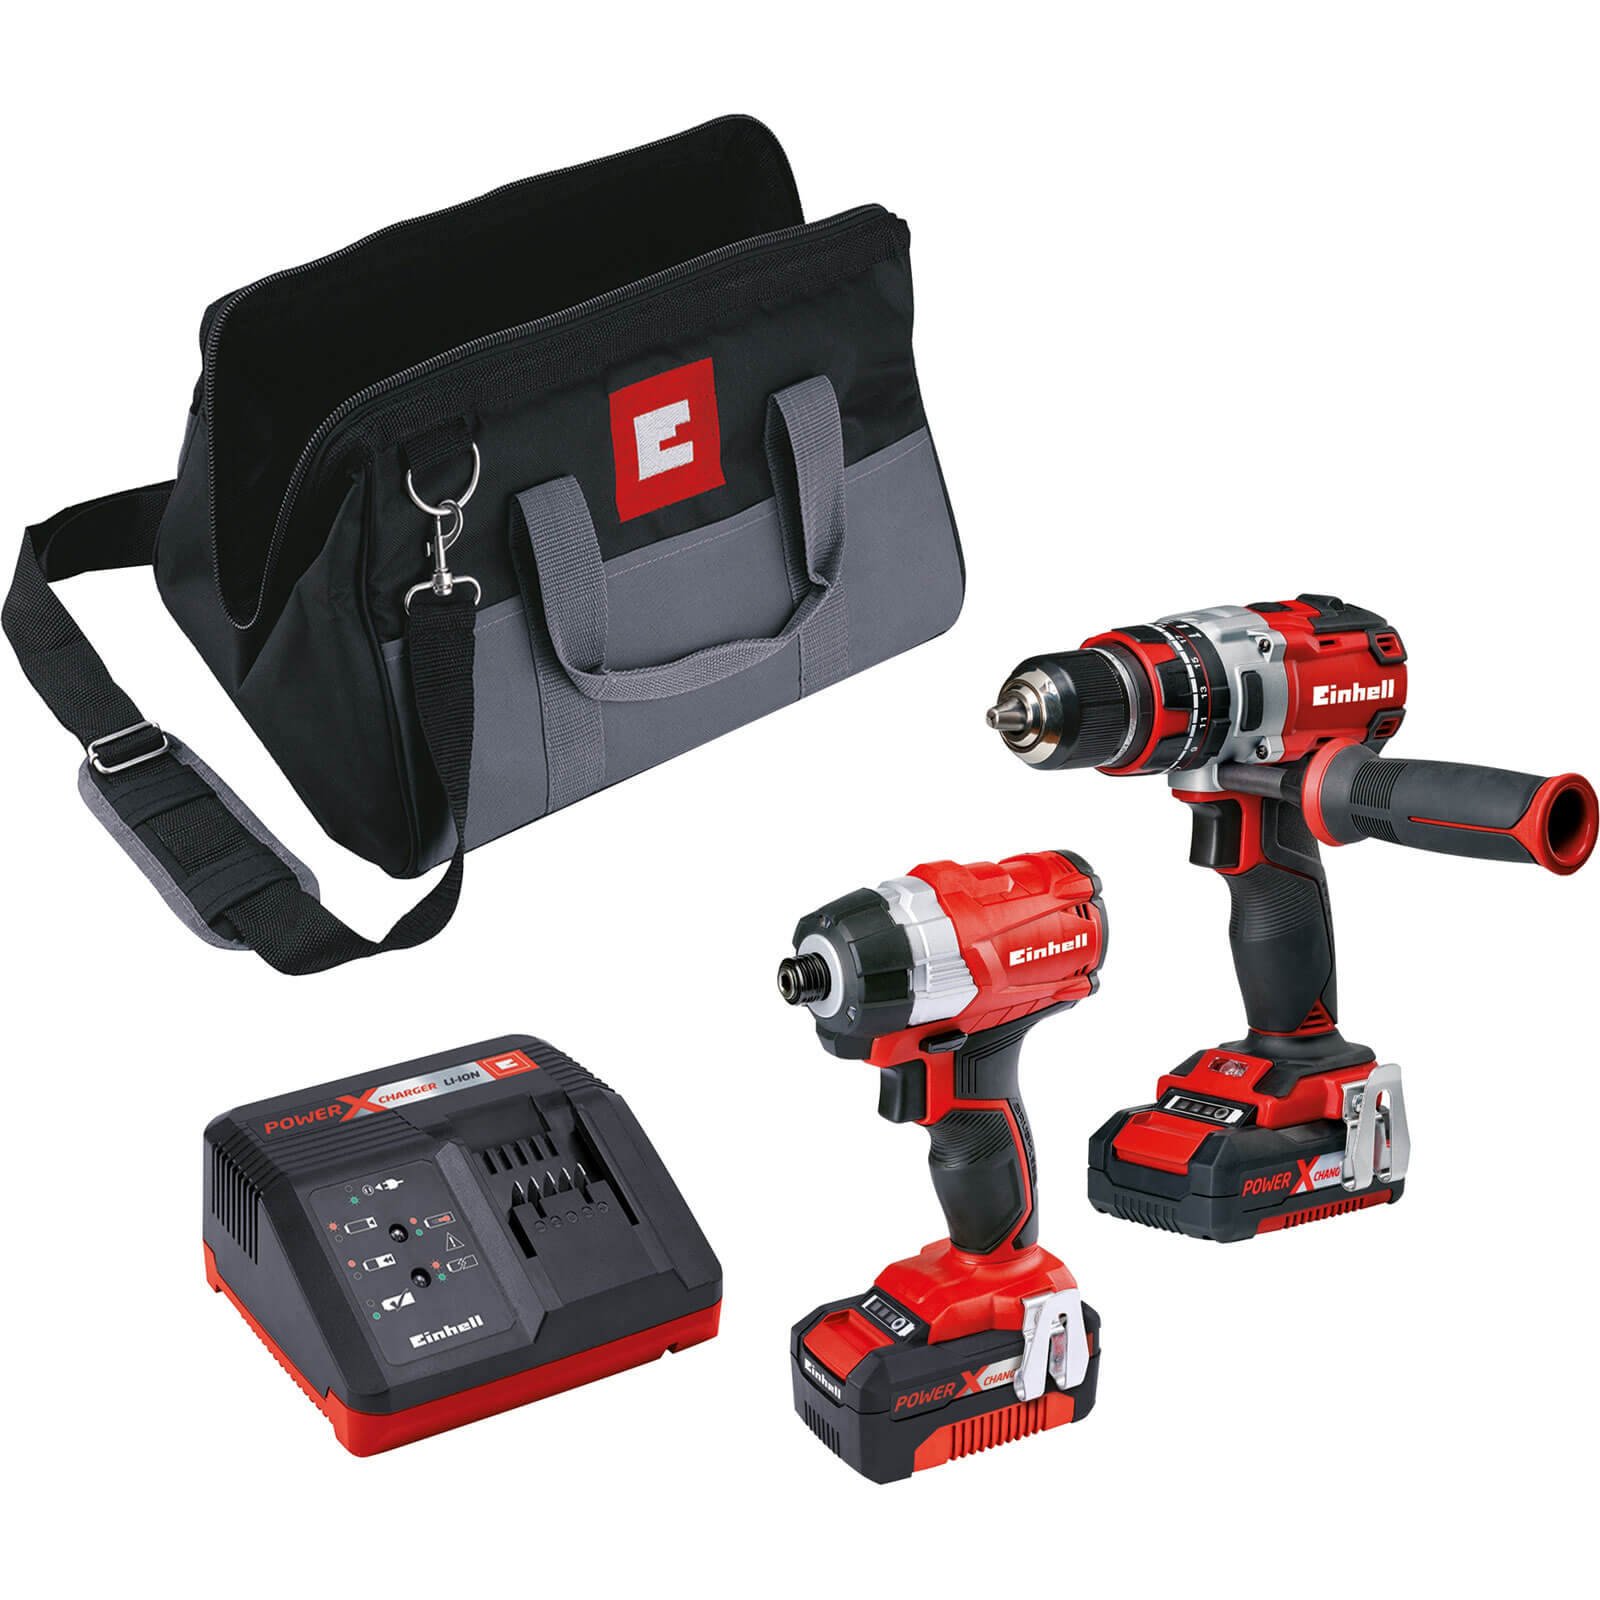 Einhell Power X Change Brushless Drill Twin Pack